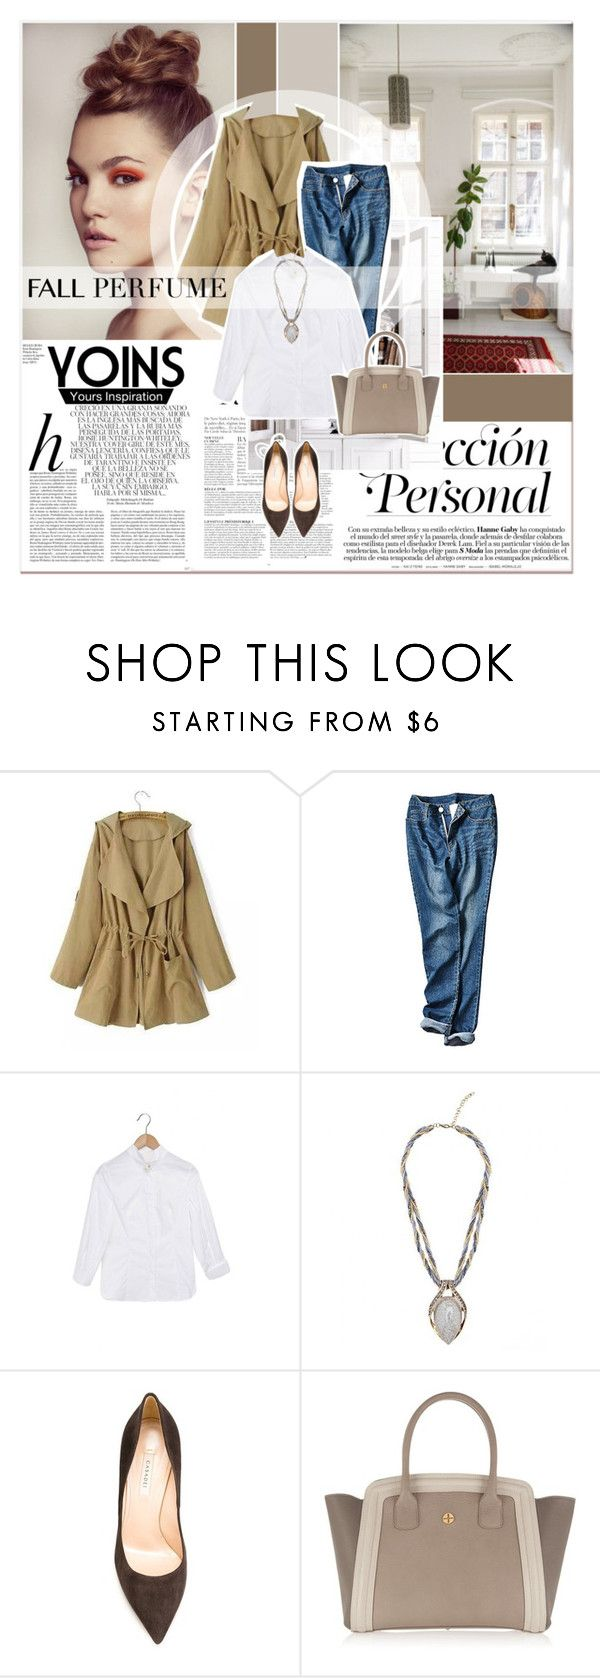 """# VI/7 Yoins"" by lucky-1990 ❤ liked on Polyvore featuring Whiteley, Anja, Tine K Home, Casadei, women's clothing, women's fashion, women, female, woman and misses"